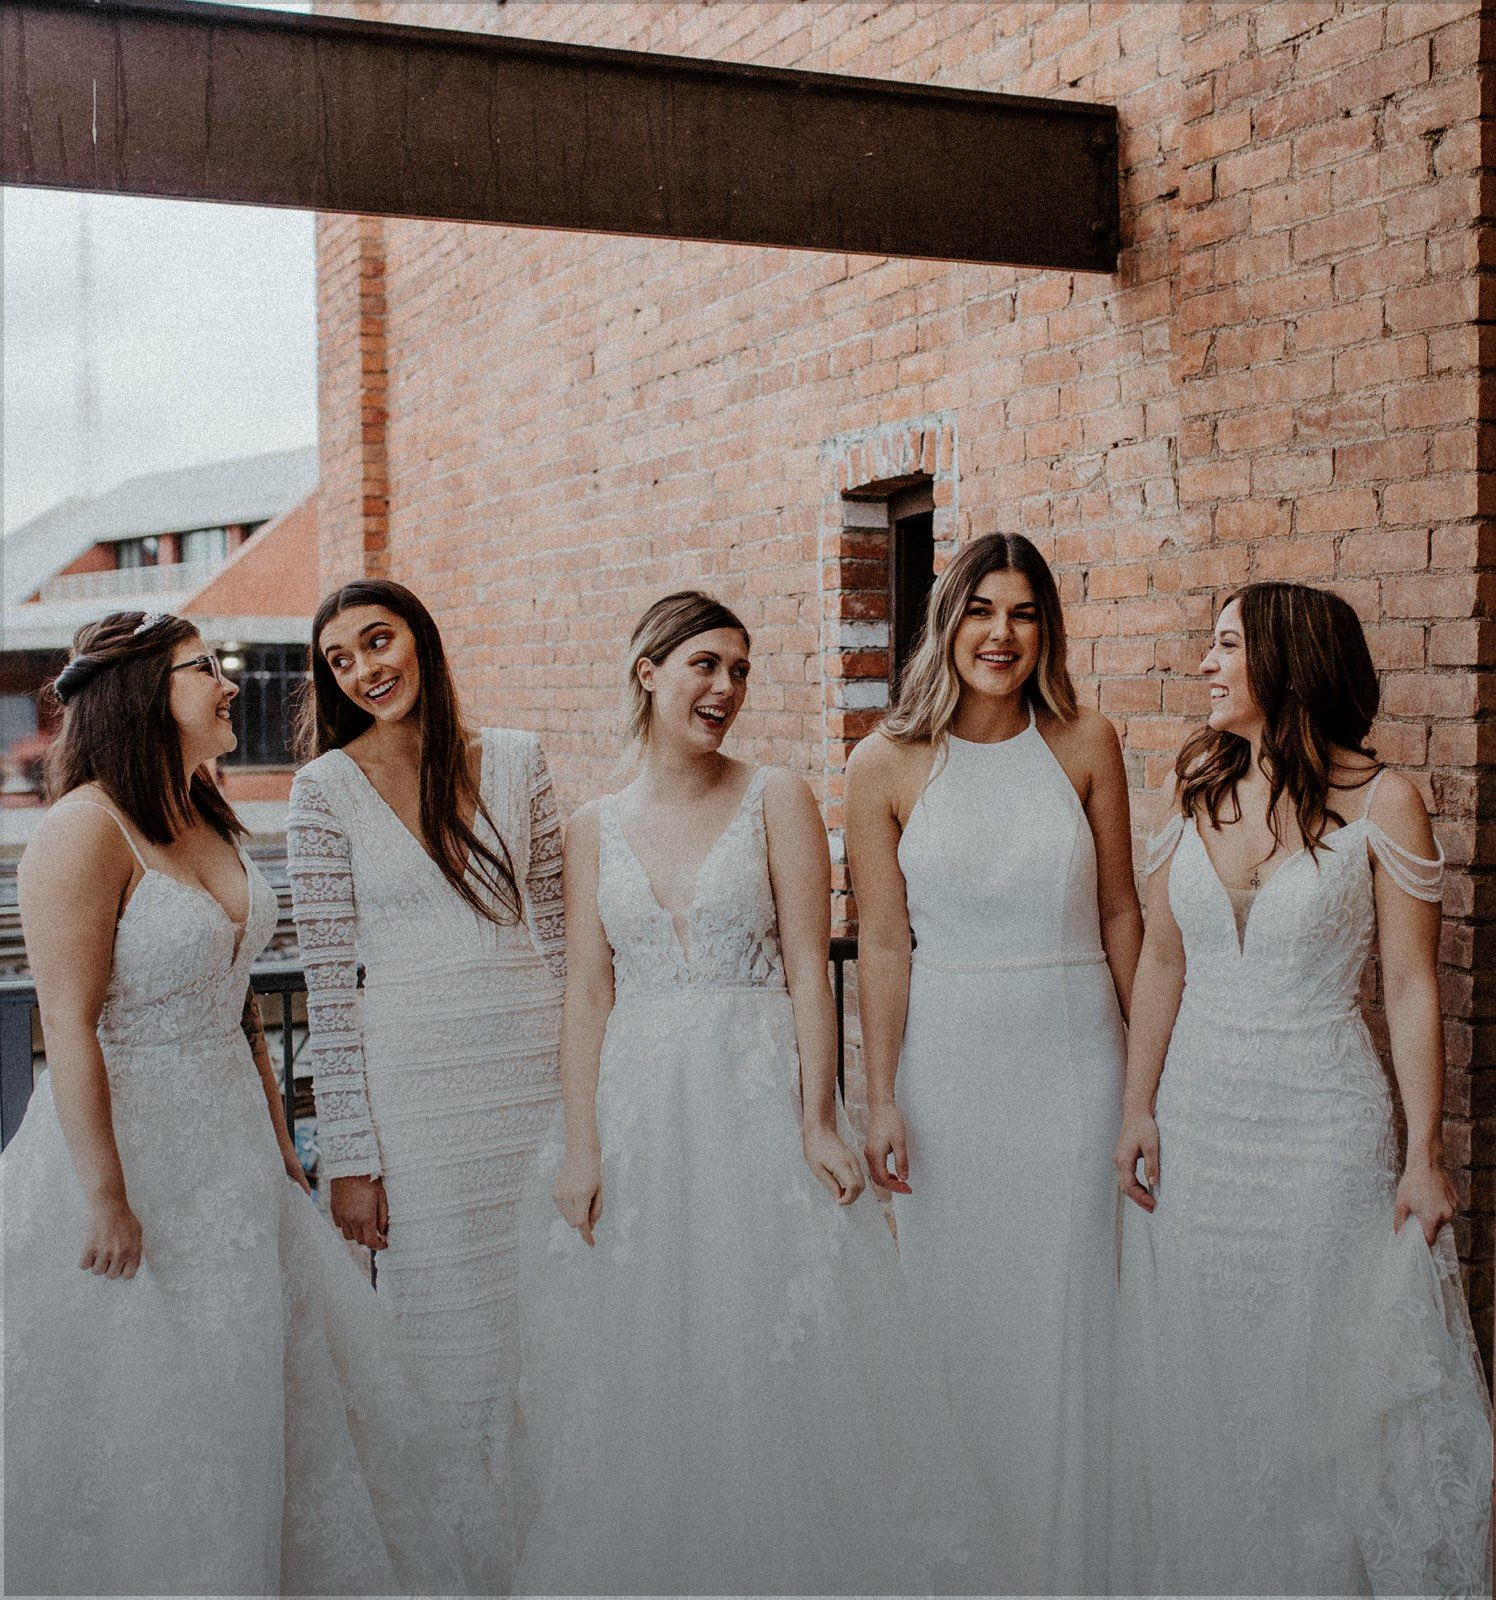 Marcella's Bridal Wedding Dresses in Spokane, Washington